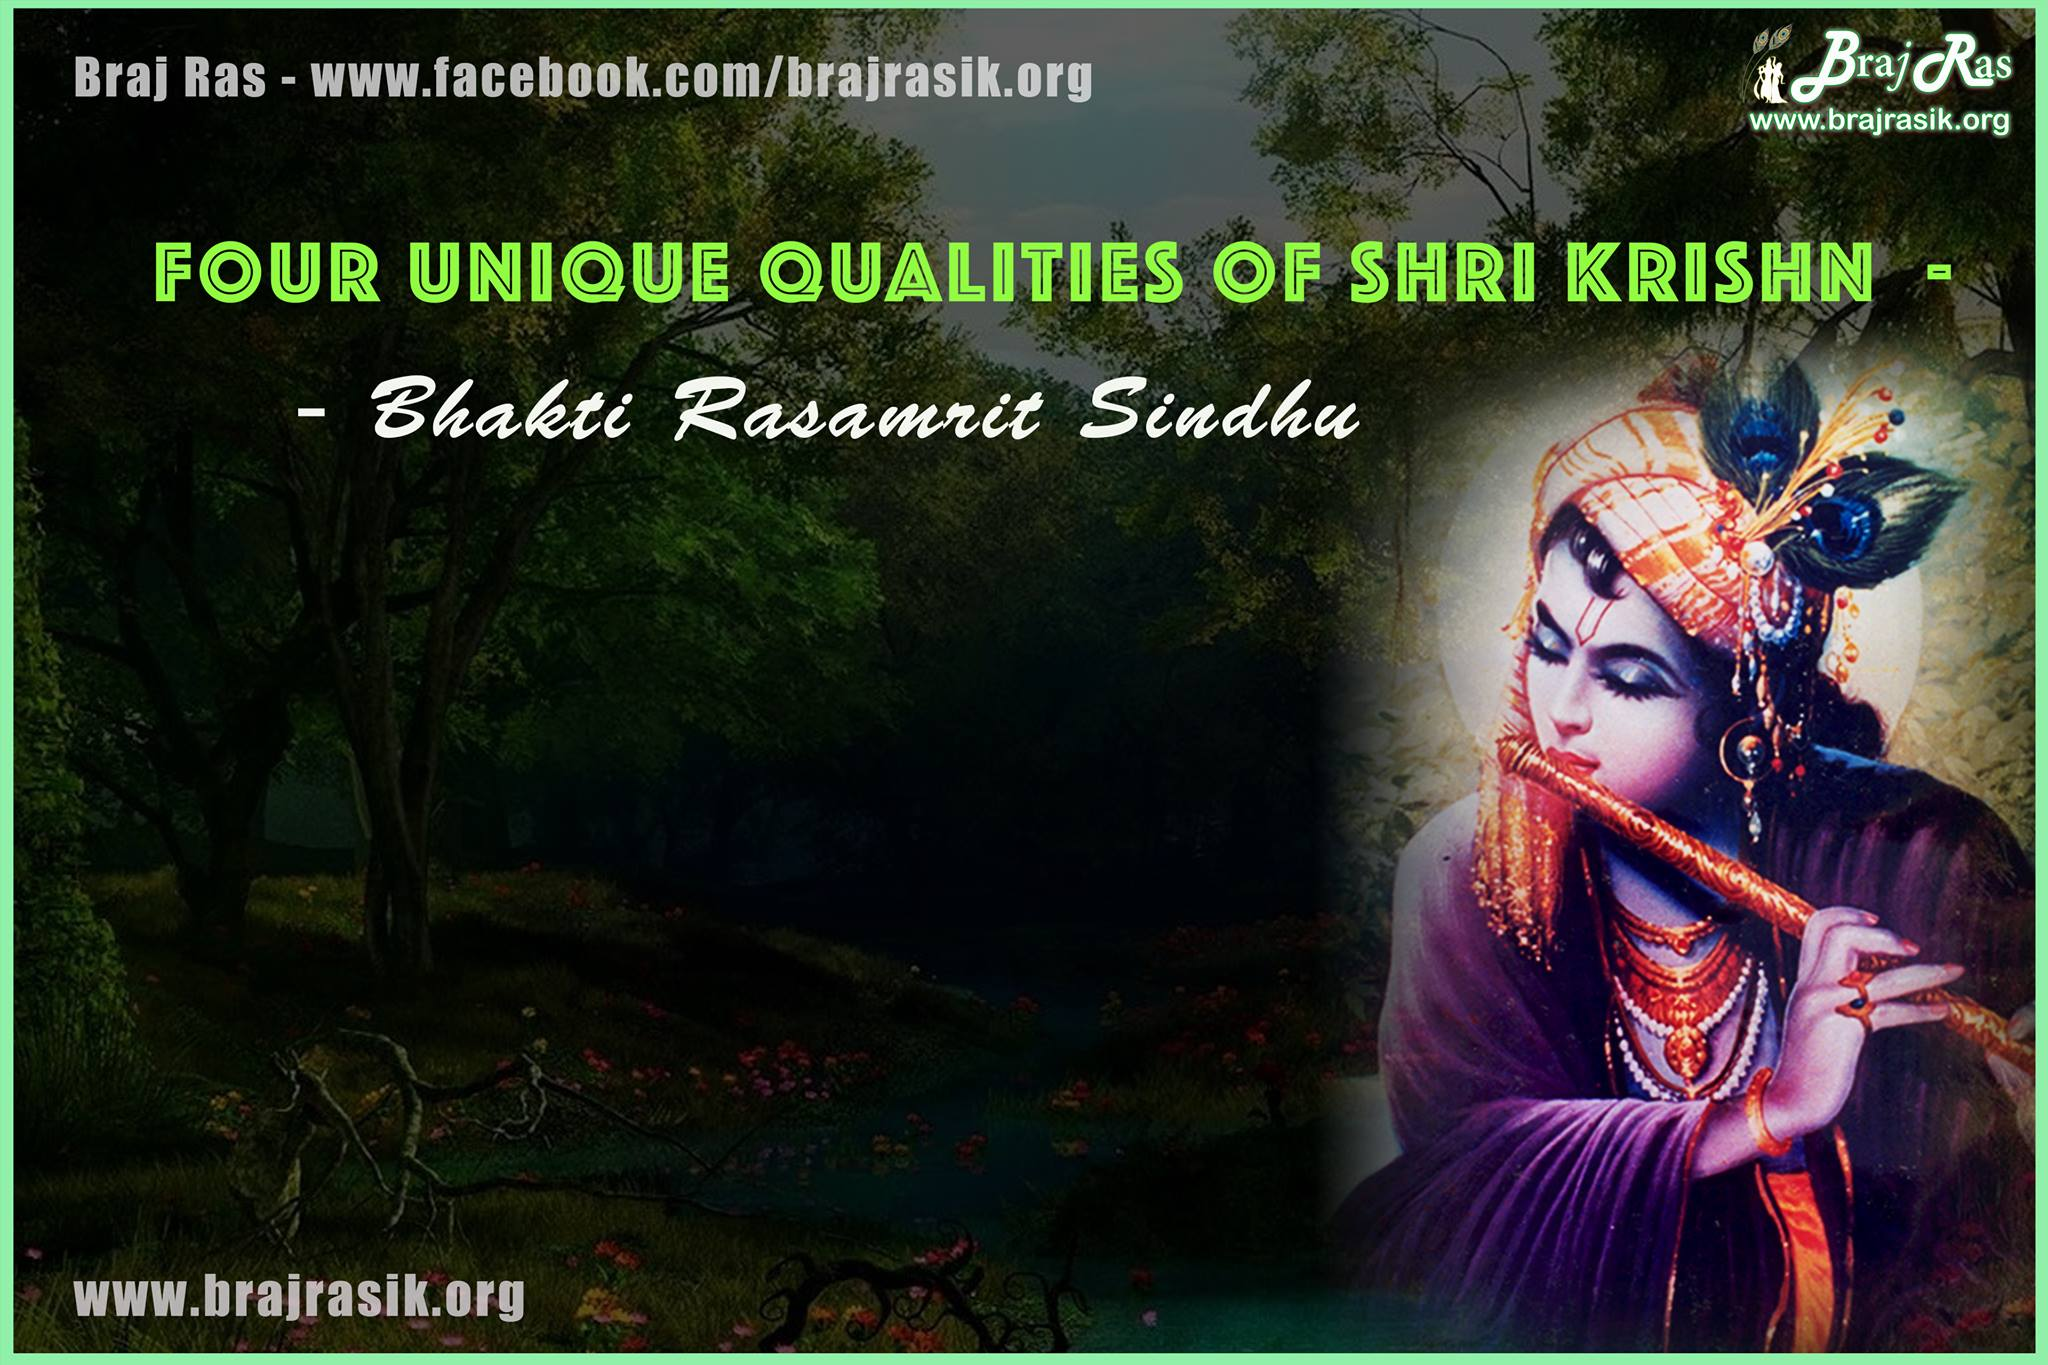 Four Unique Qualities Of Shri Krishn - Bhakti Rasamrit Sindhu, Roop Goswami